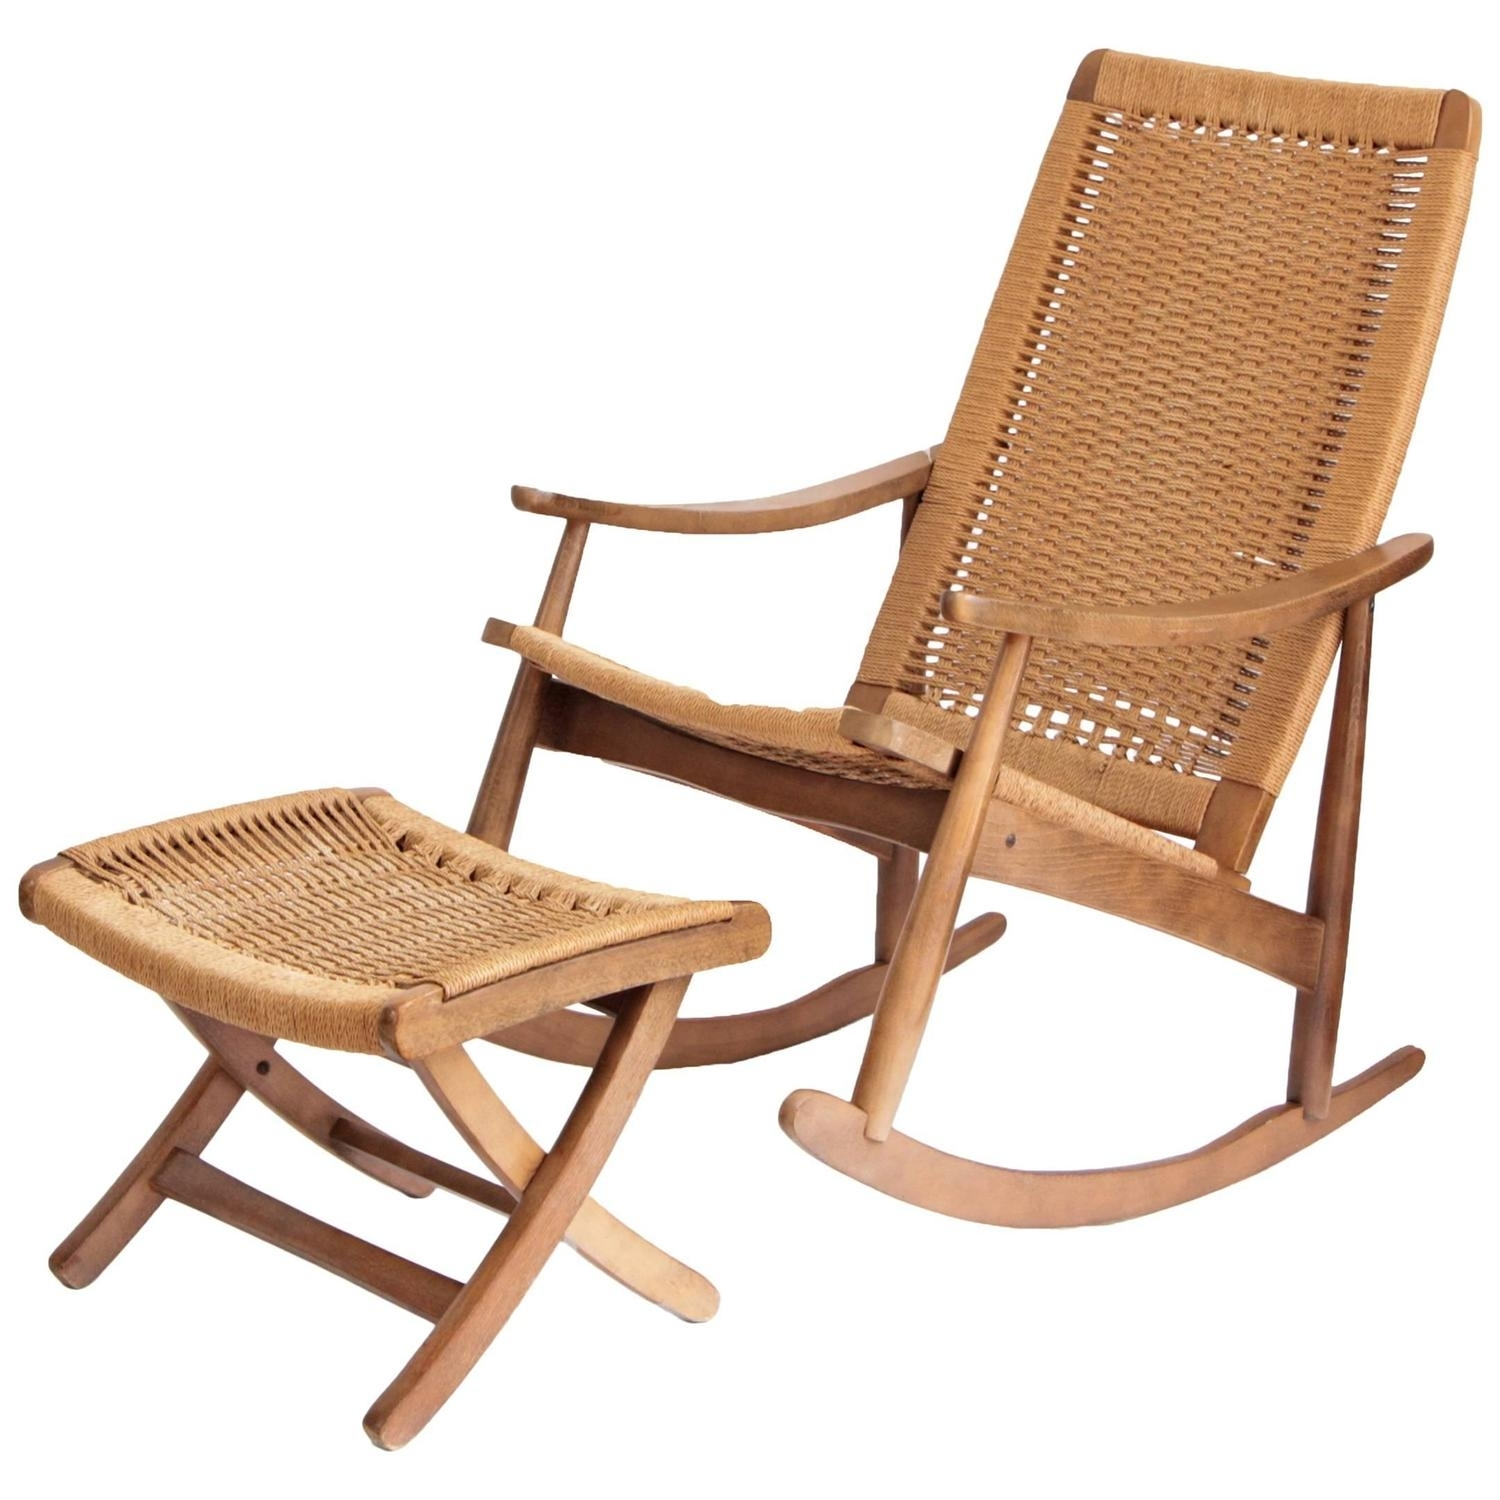 Woven Rope Mid Century Modern Rocking Chair And Ottoman At 1Stdibs With Regard To Rocking Chairs With Ottoman (#15 of 15)